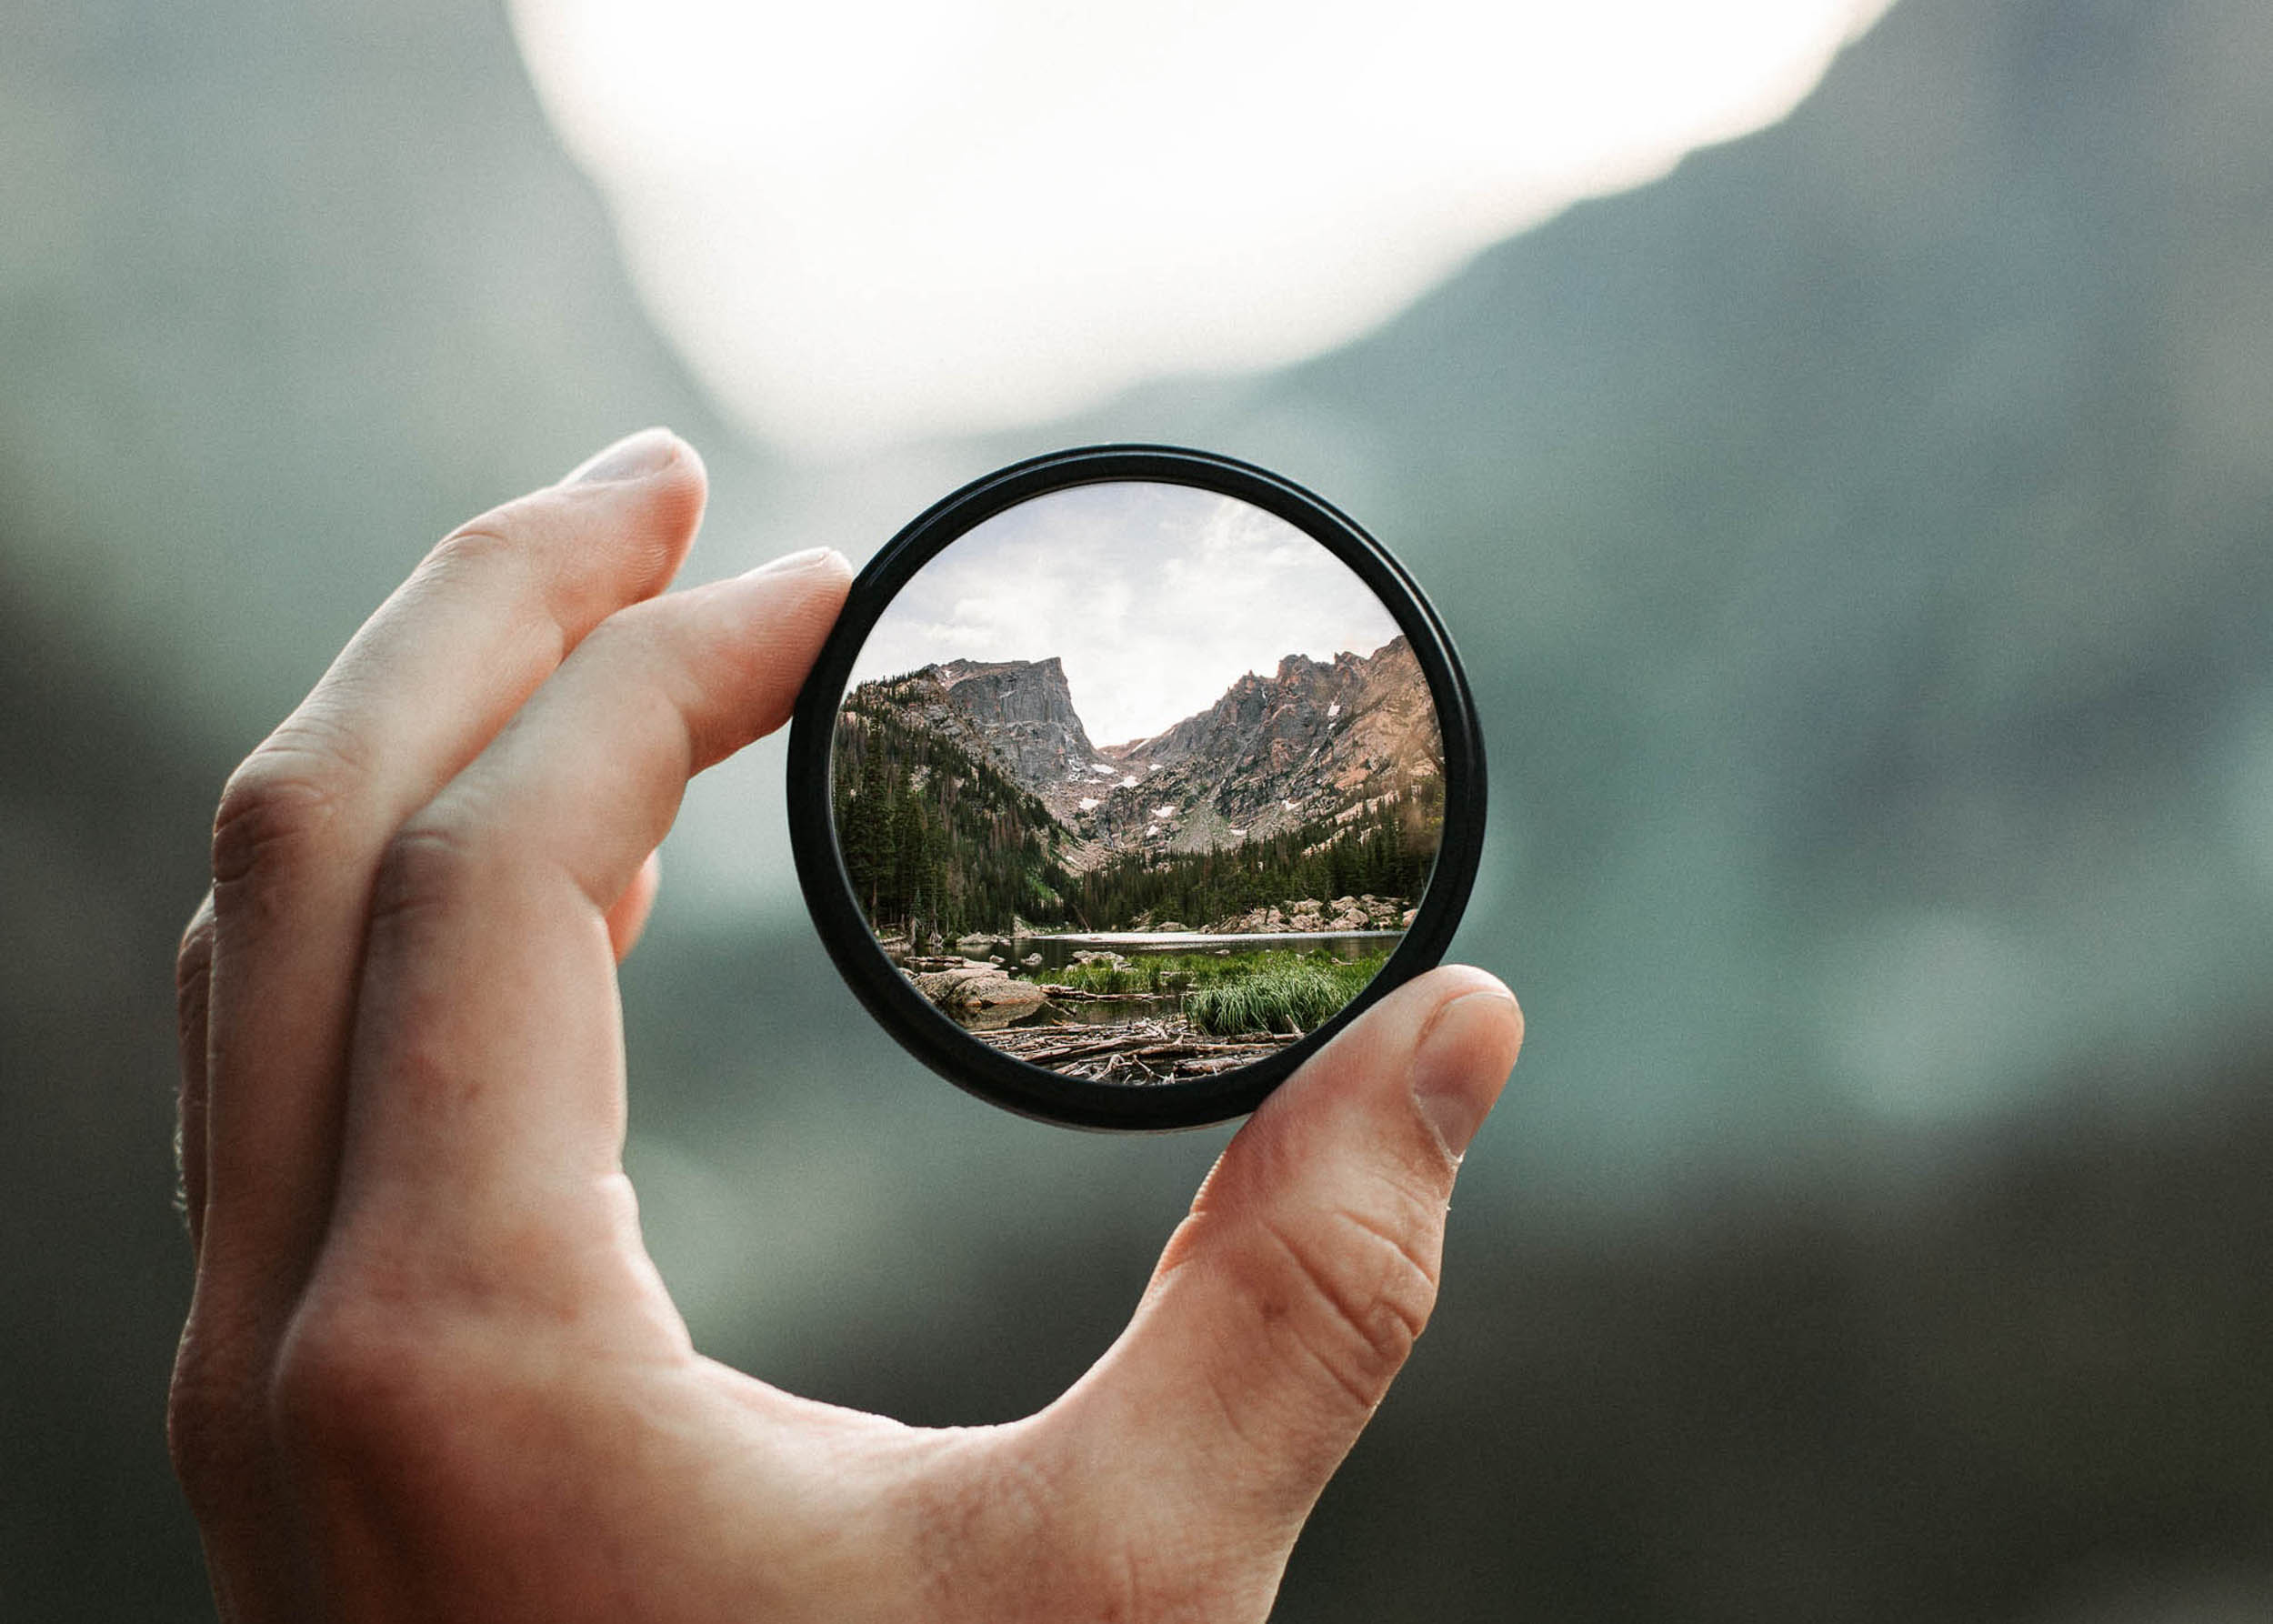 Why is curiosity important in professional and personal development